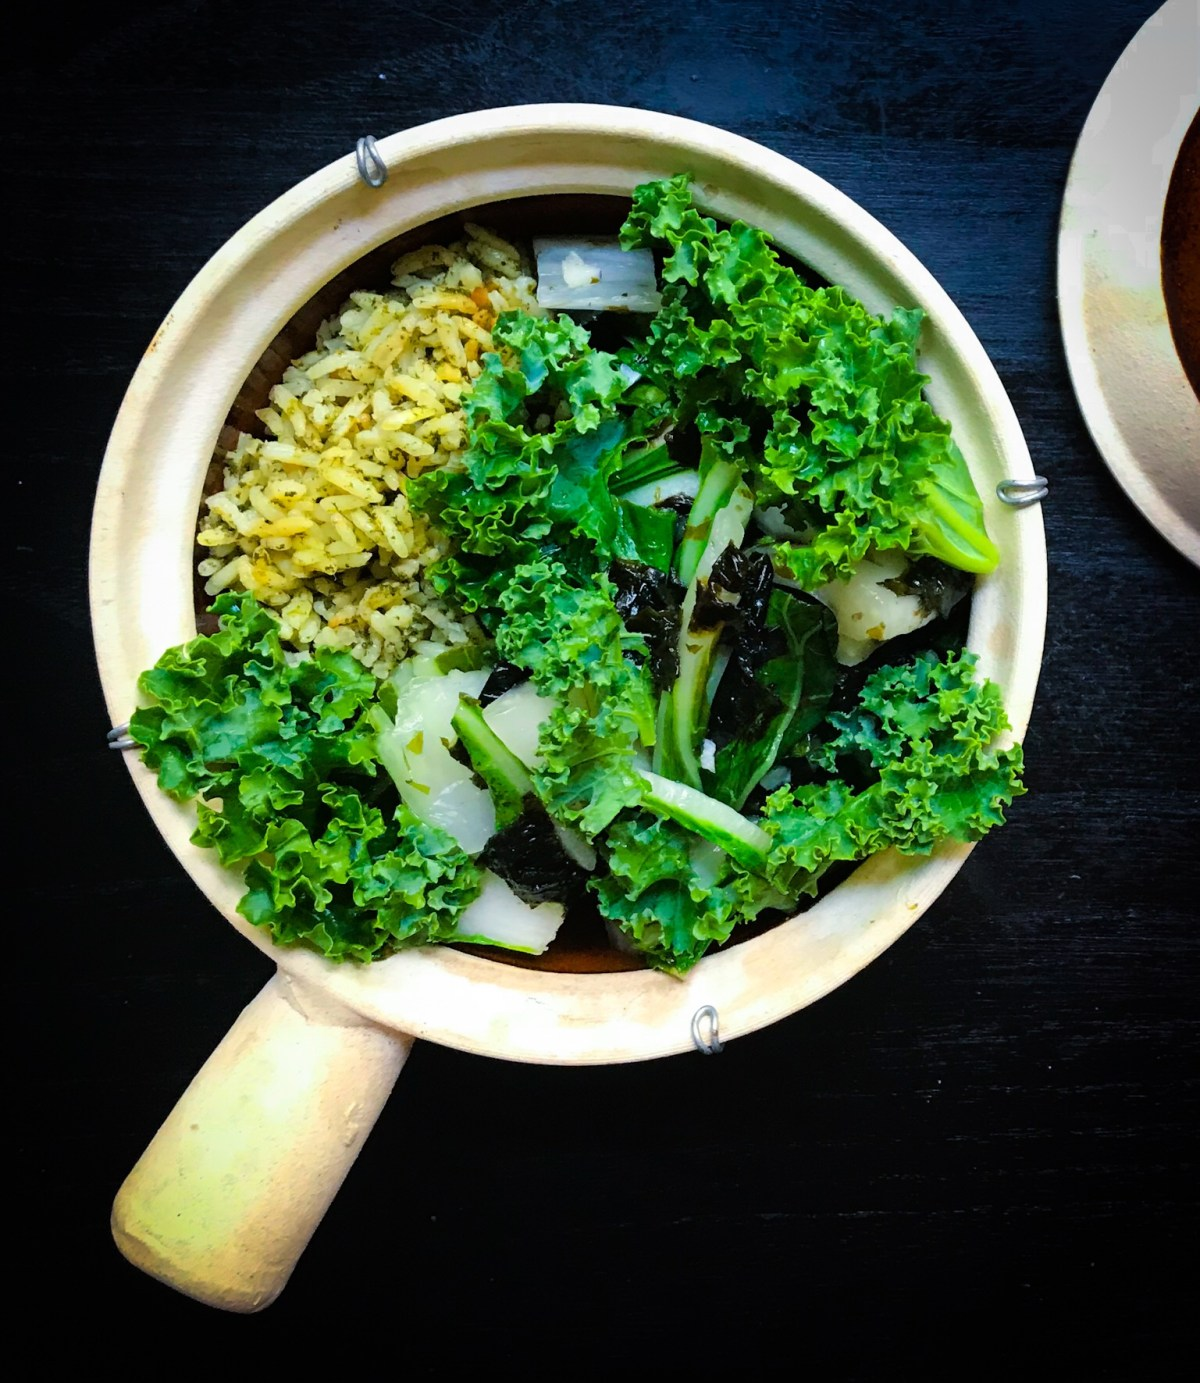 Vegetarian meal prep recipes just for you! Green rice, kale, bok choy, nori!